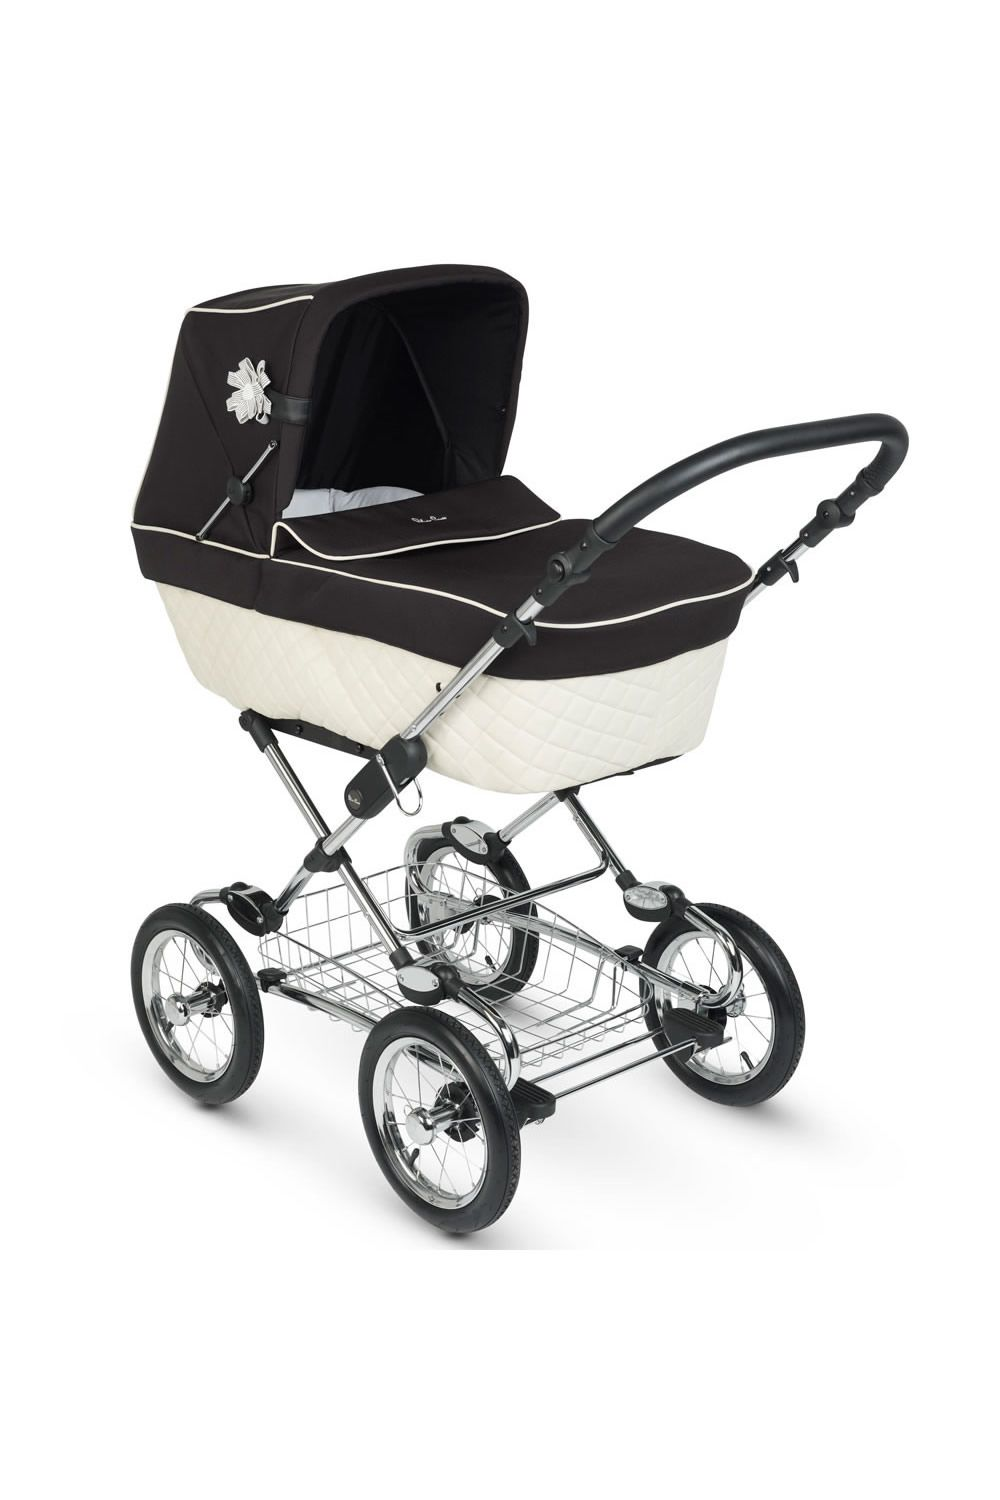 Silver Cross Elegance Buggy Board Princess Marie Chantal Sleepover Silver Cross Prams